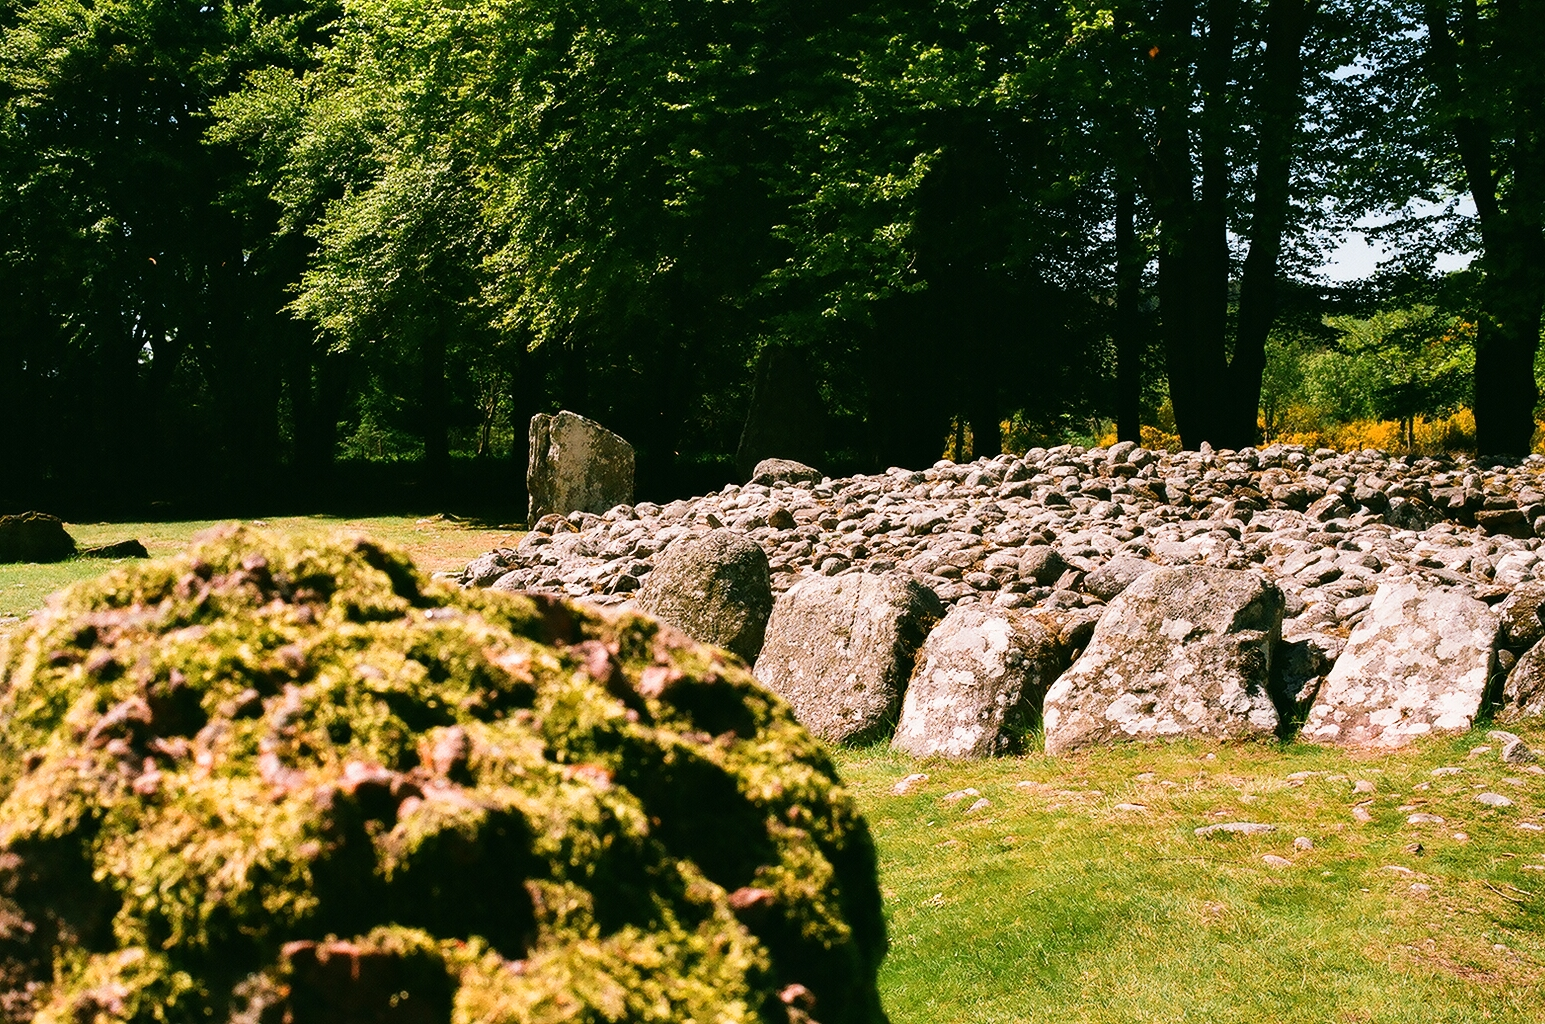 One of the passage-tombs, with the outer circle-stones visible in the foreground and background.  Picture taken on 35mm film.